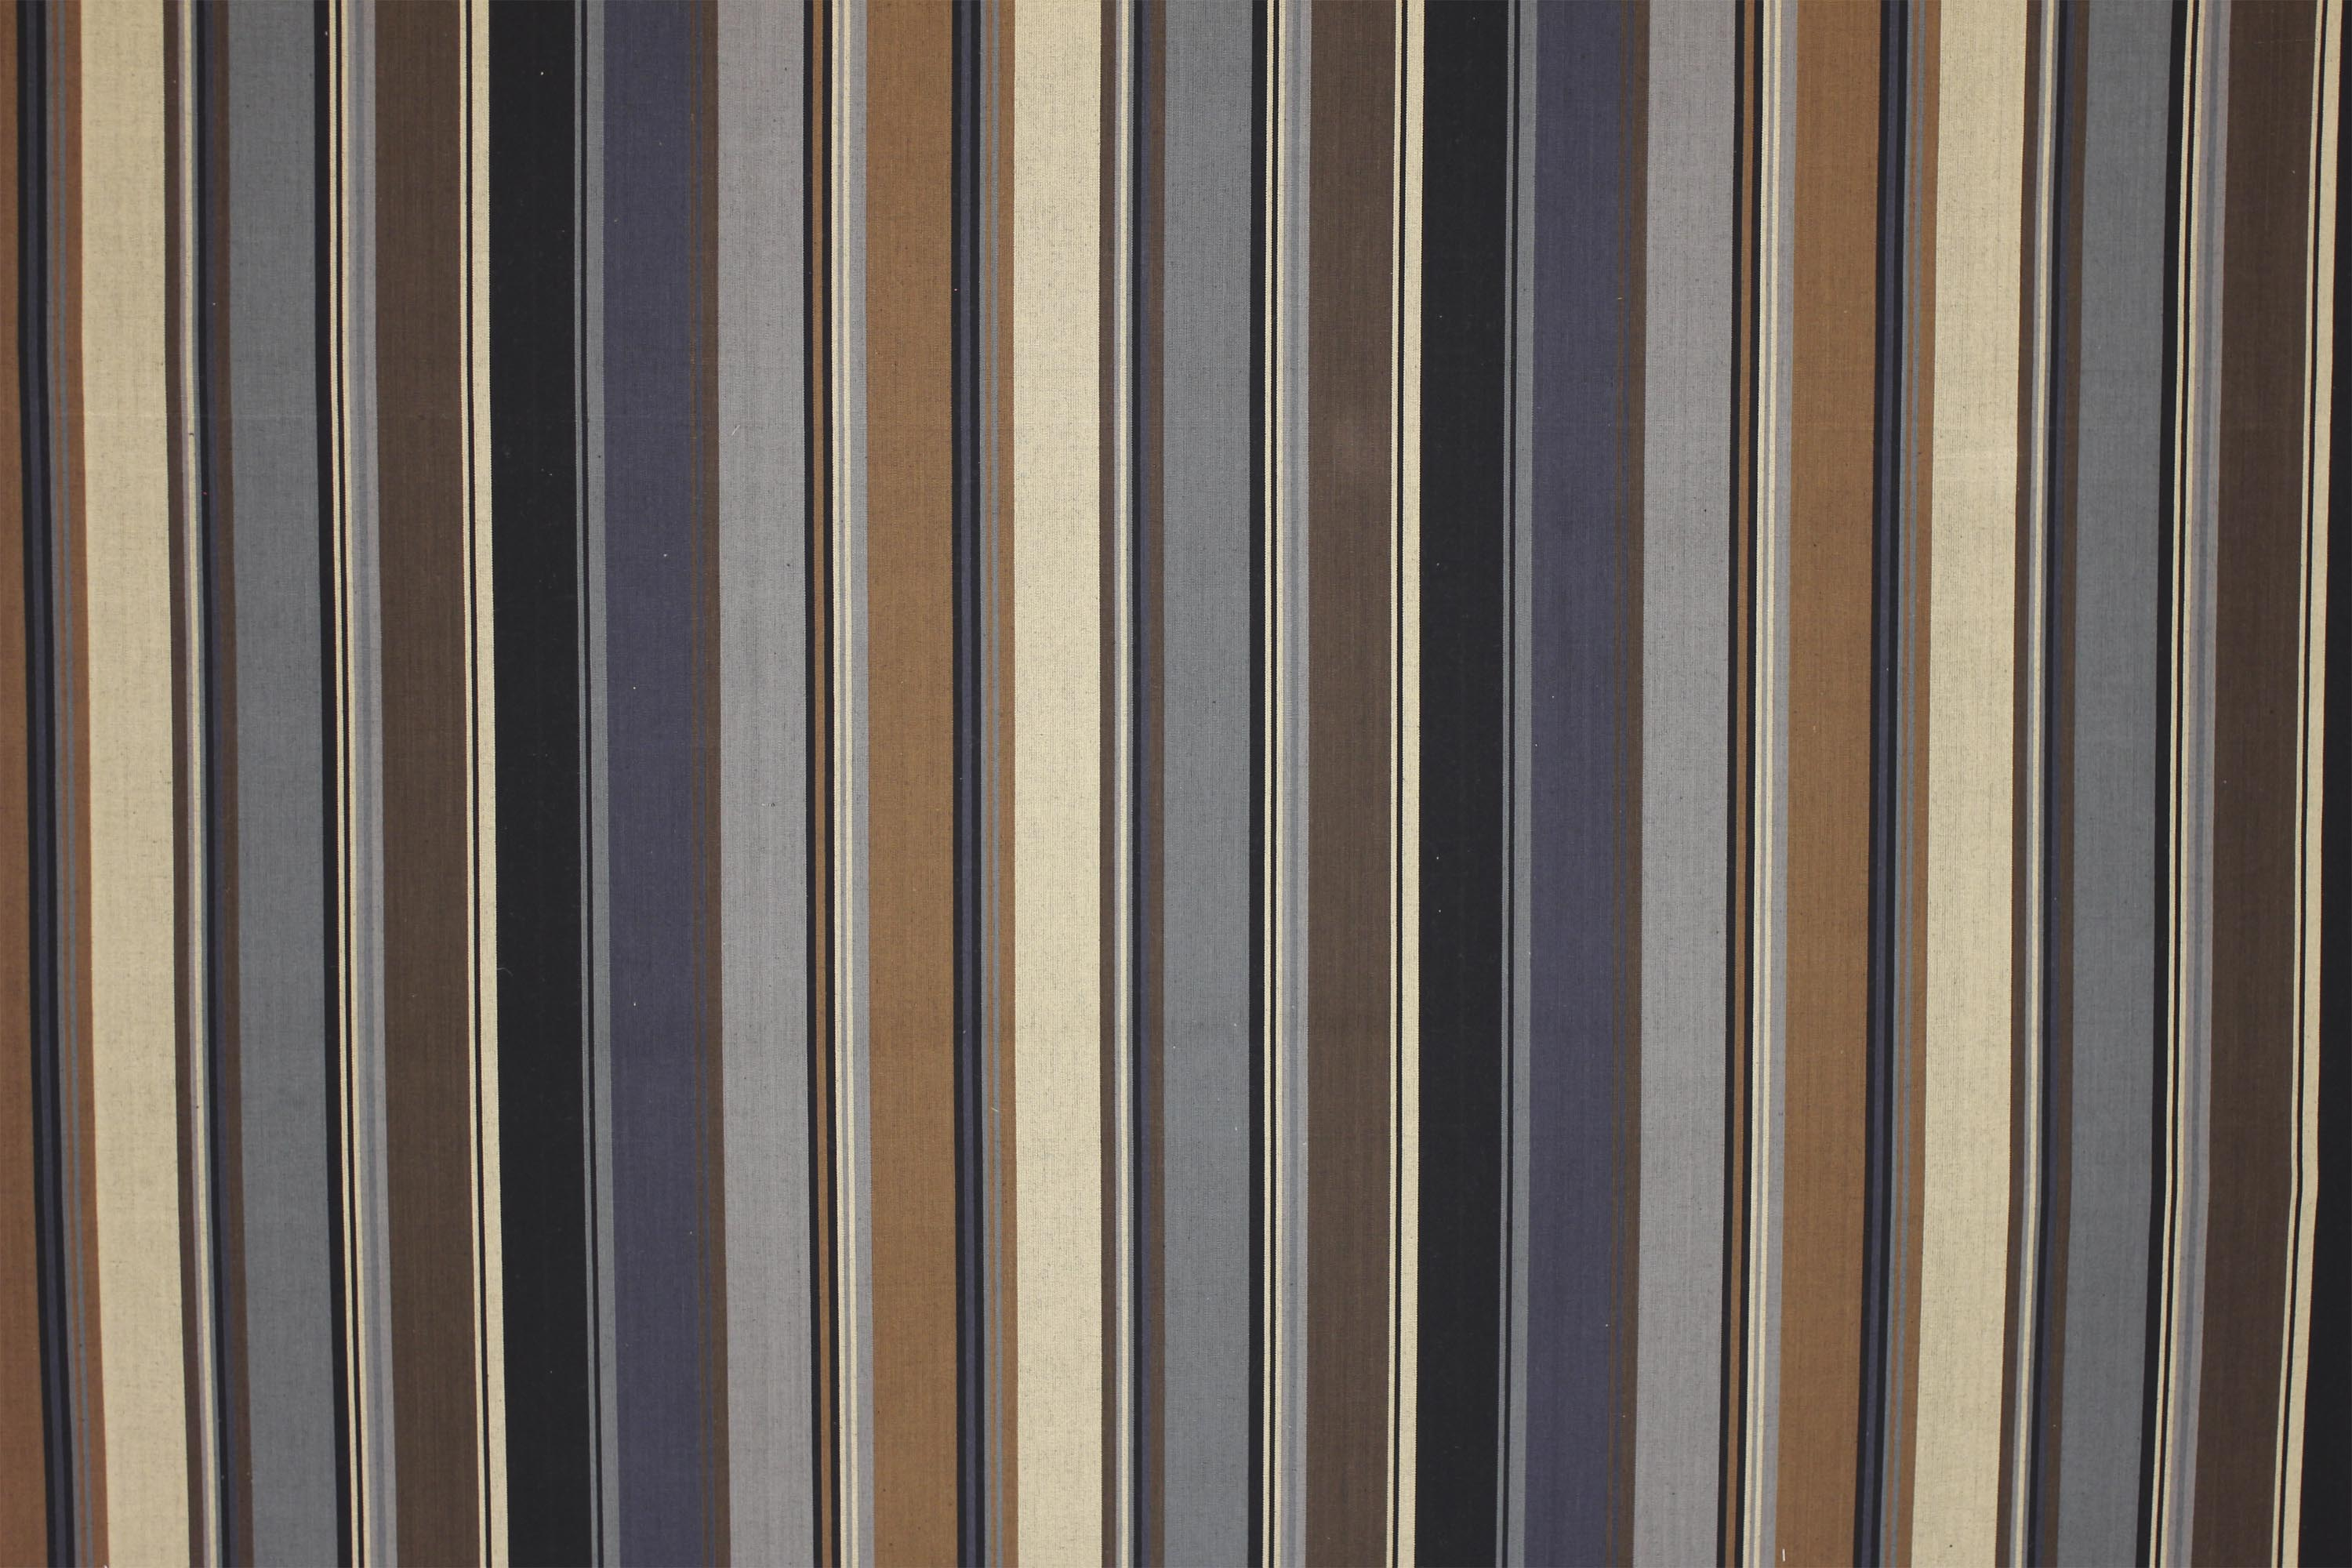 Striped Upholstery Fabric Grey | Striped Curtain Fabric Grey Stripe | Skittles Stripe